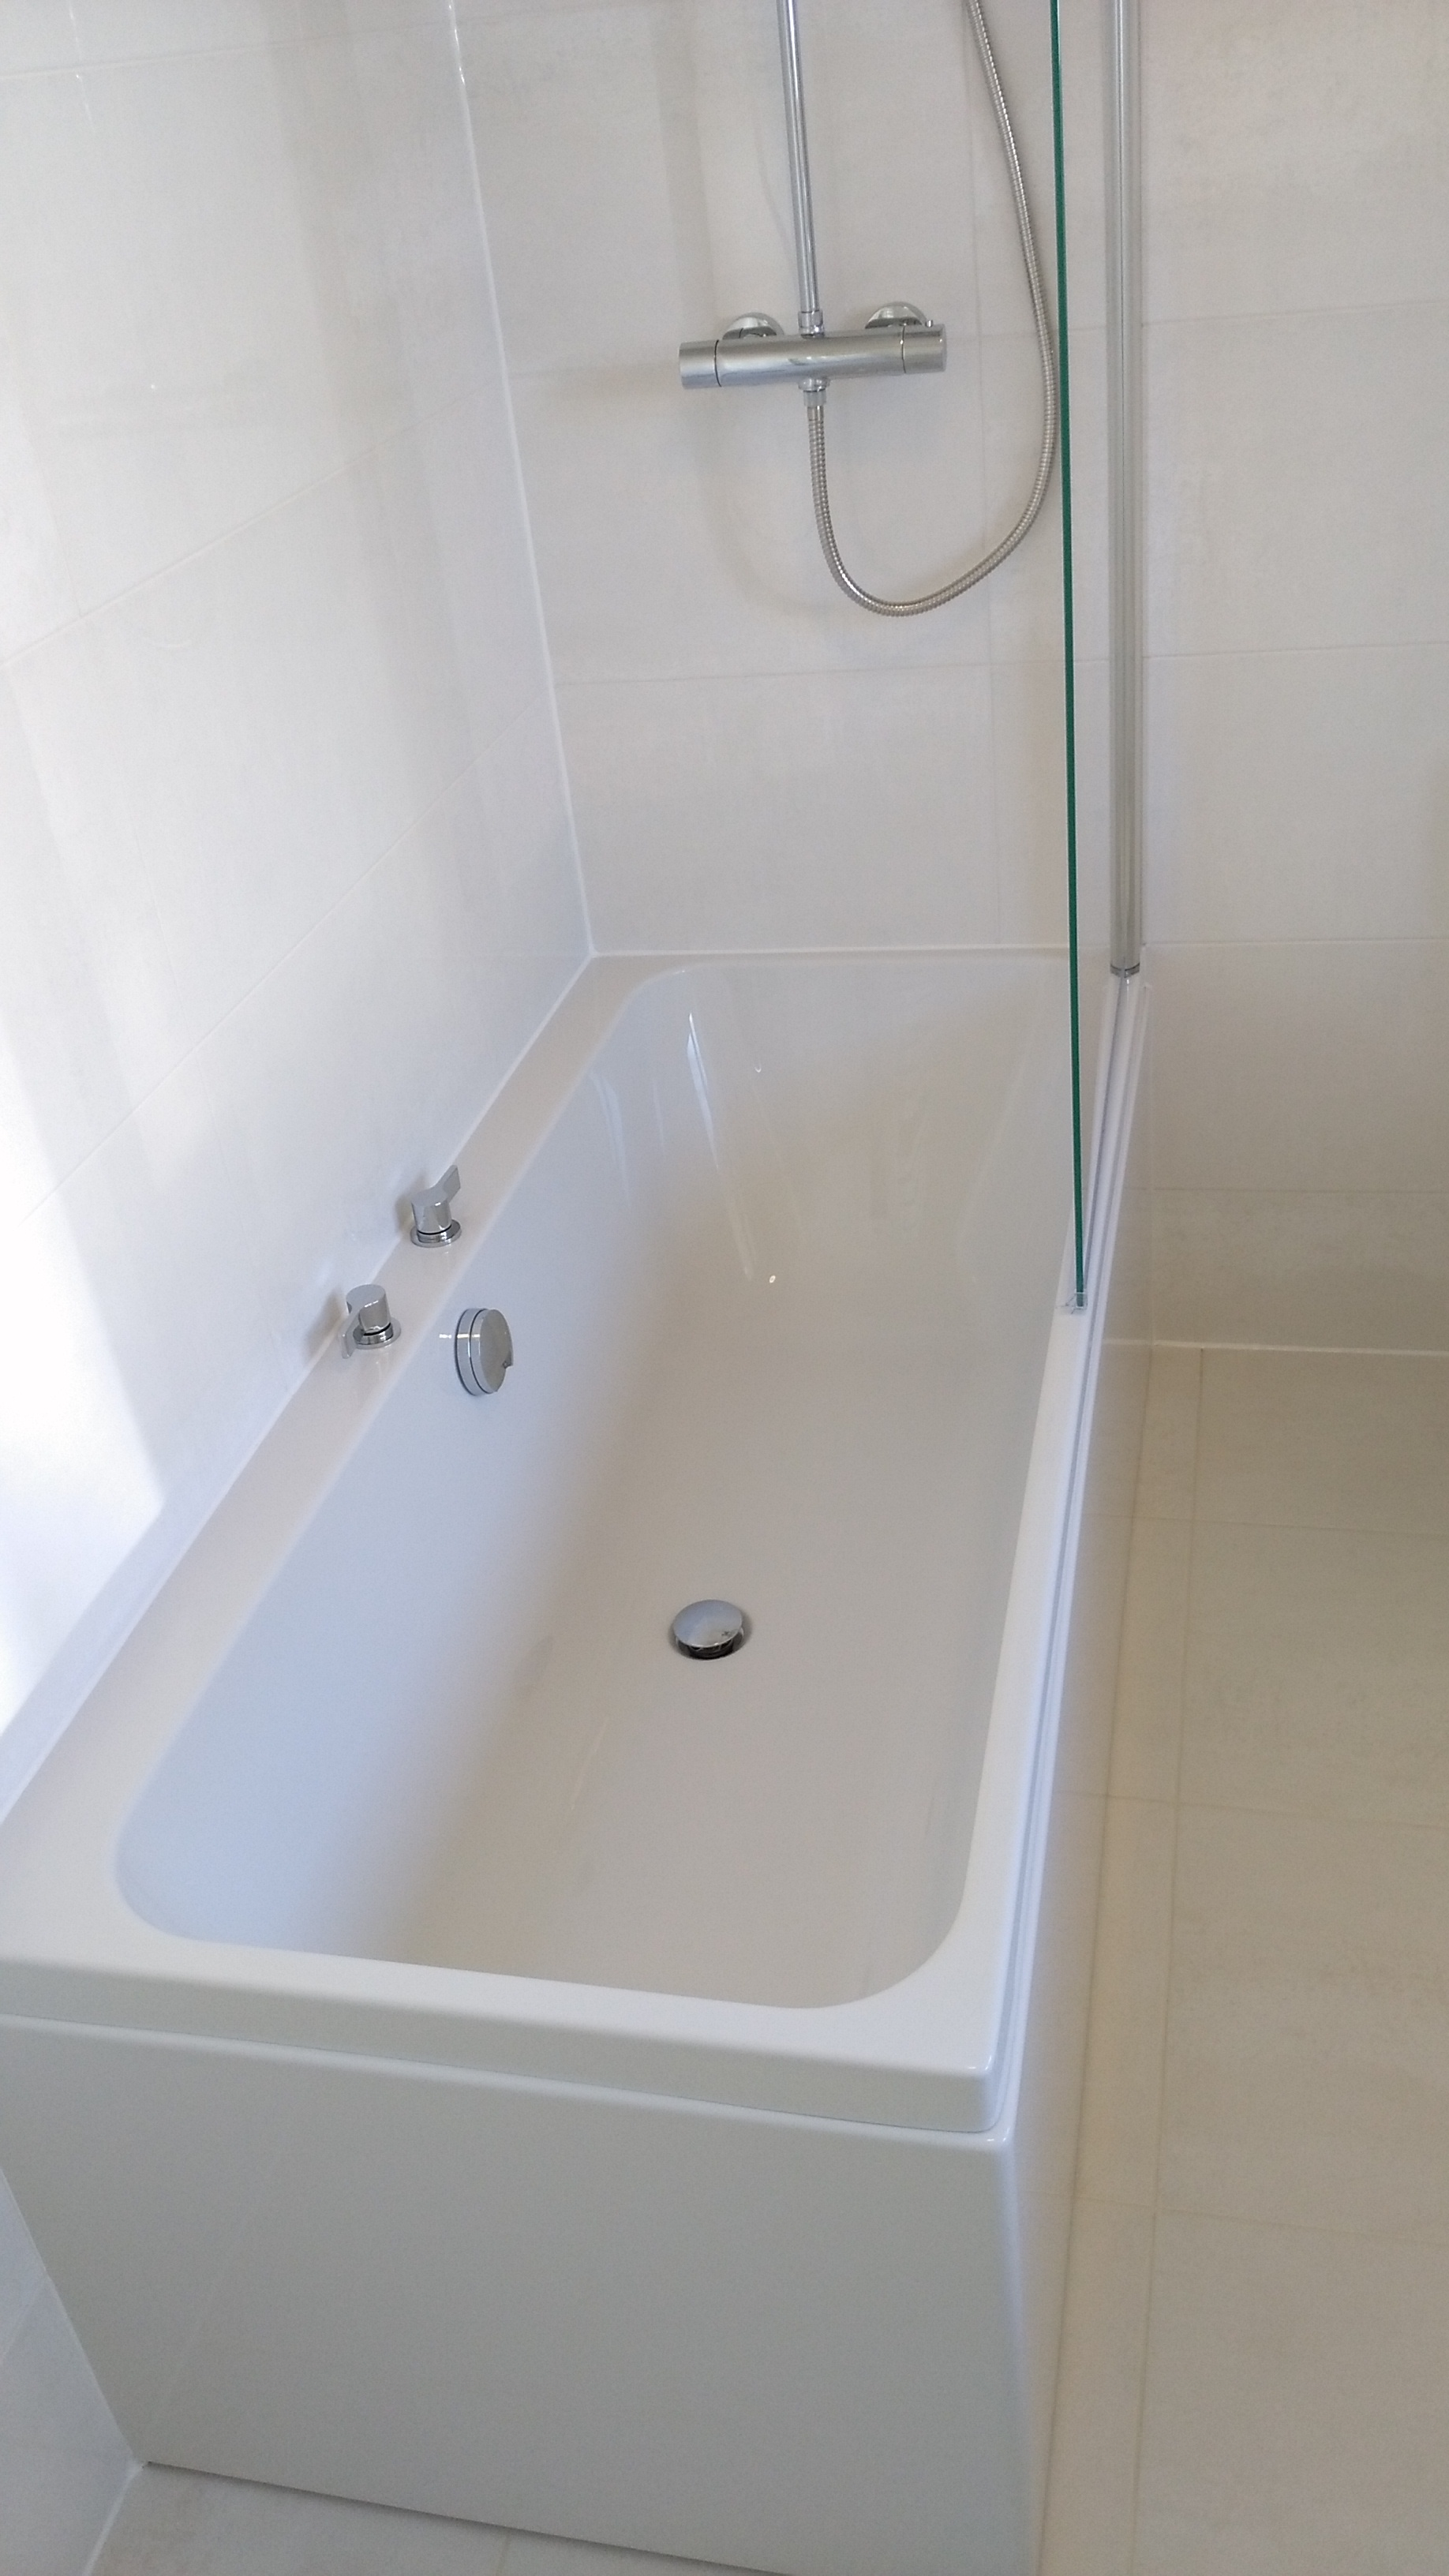 White bath with wall mounted taps